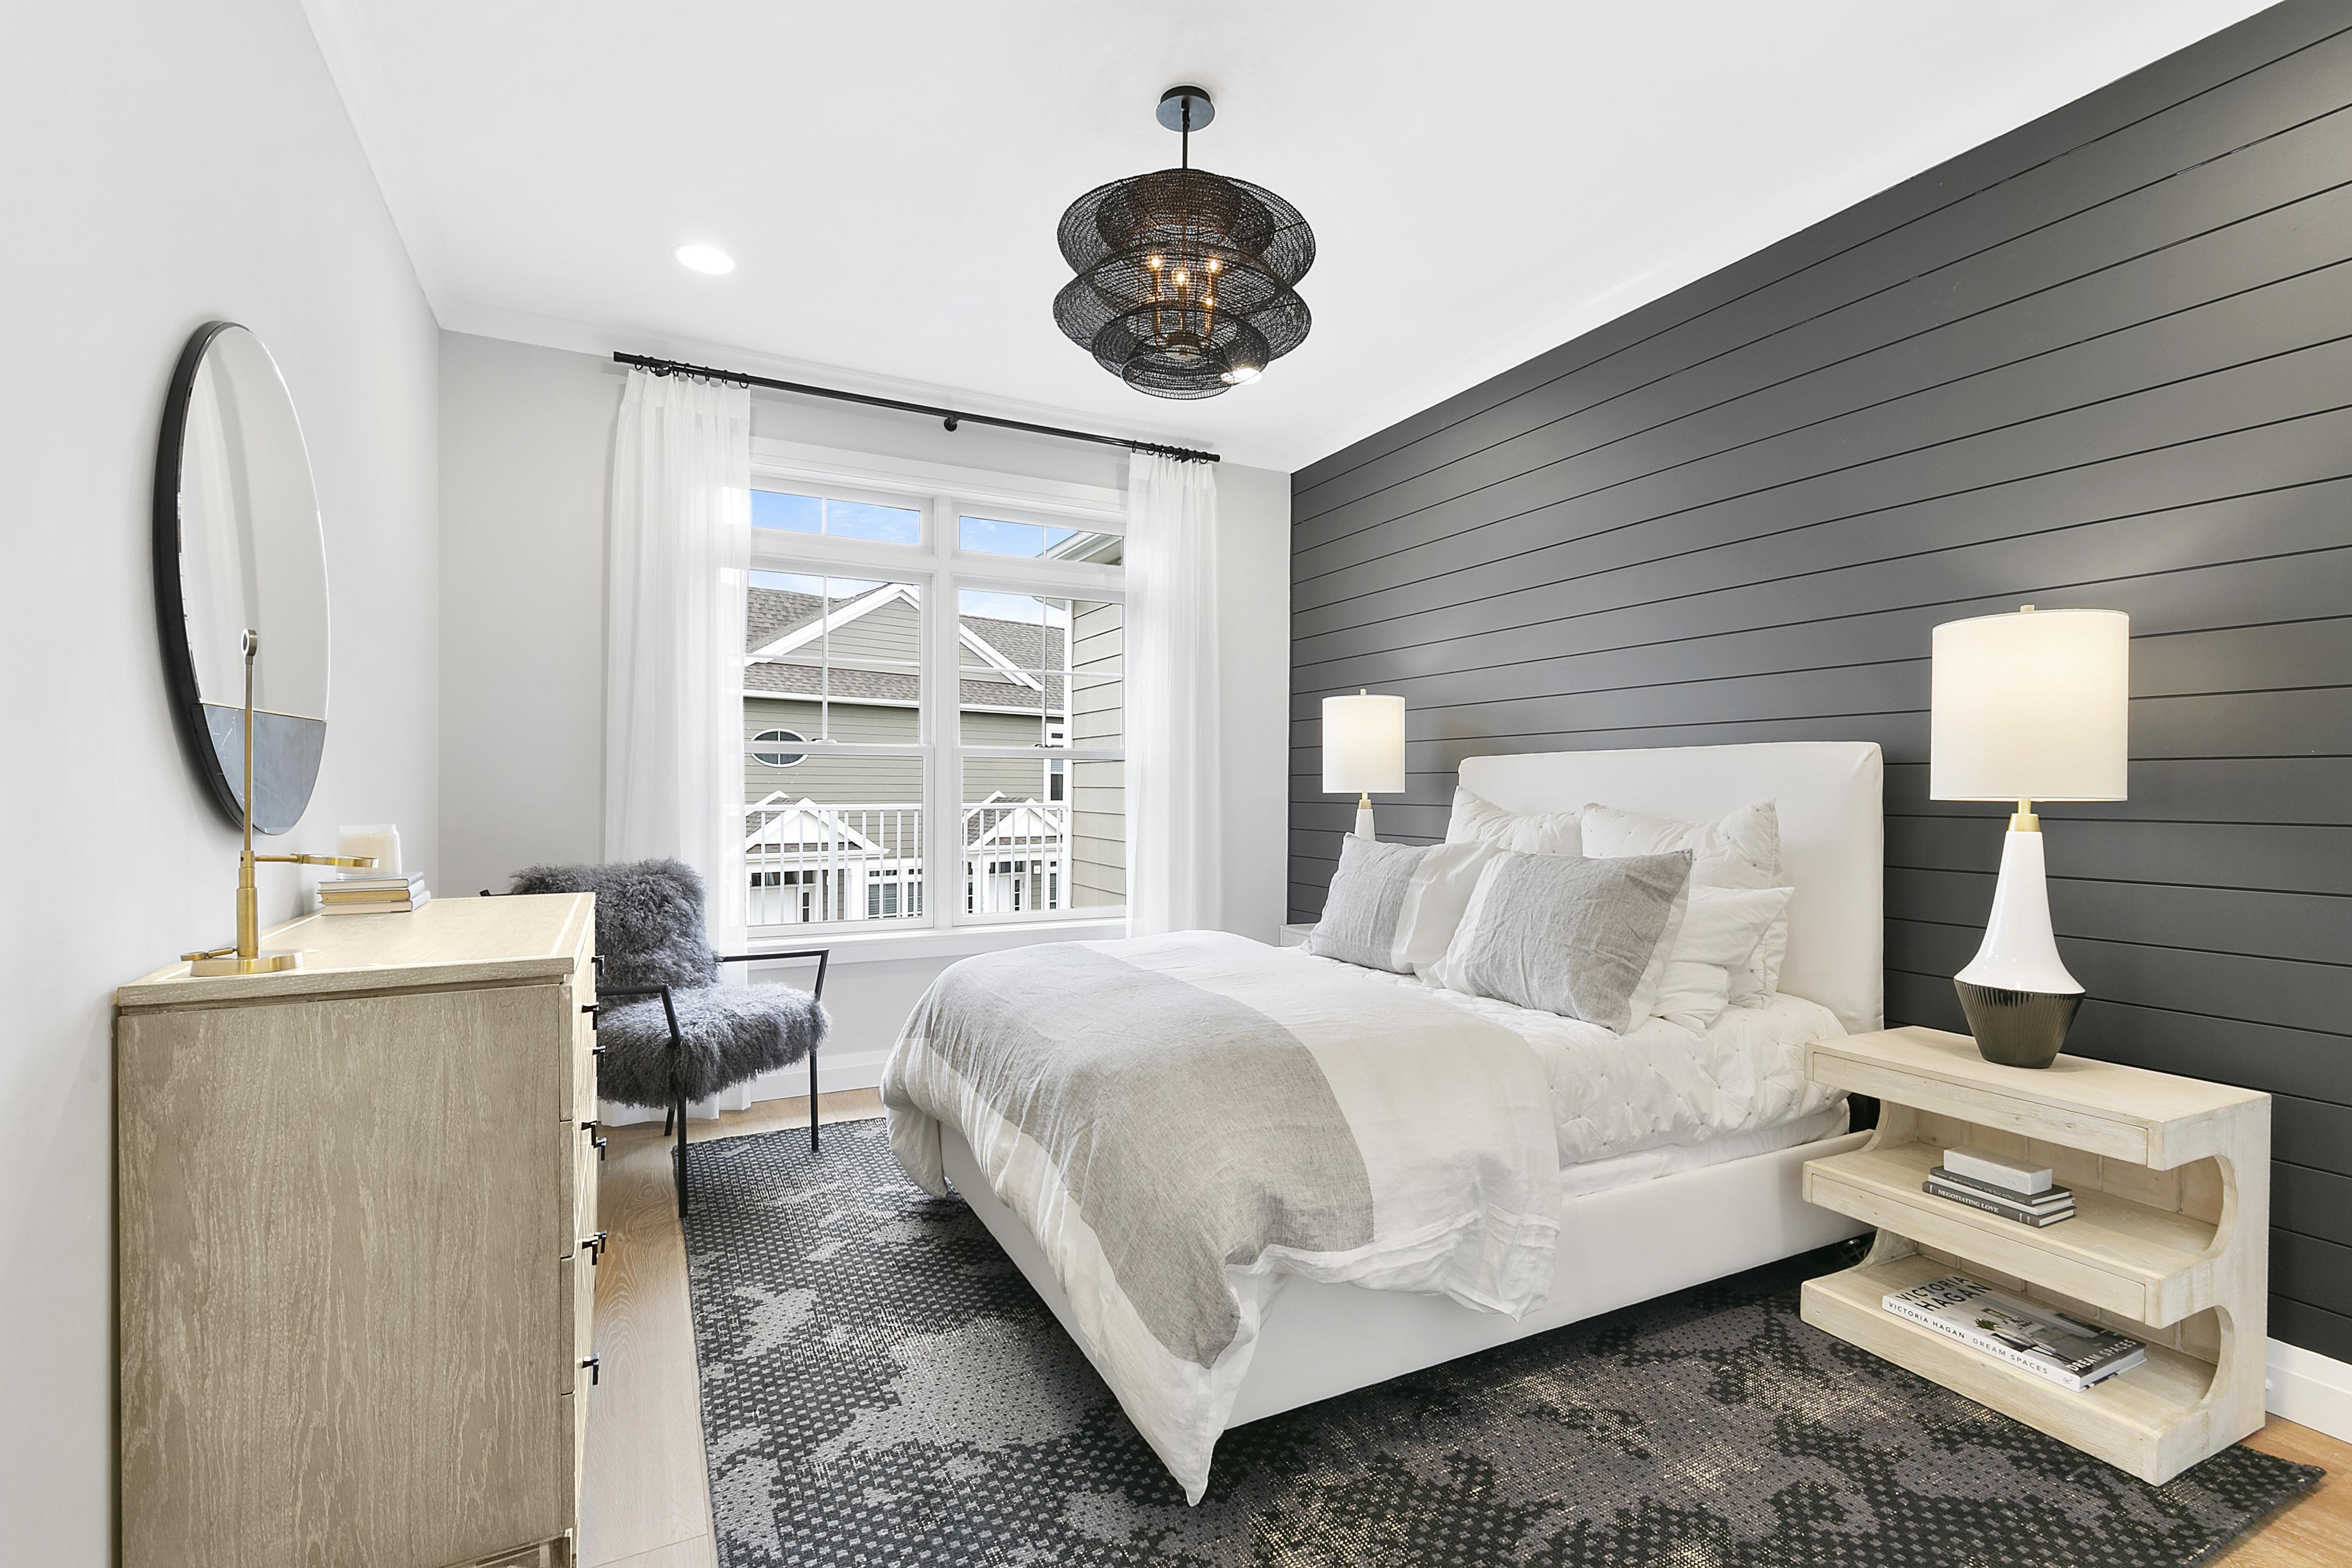 Bedroom featured in the Greenbrier By Beechwood Homes in Nassau-Suffolk, NY